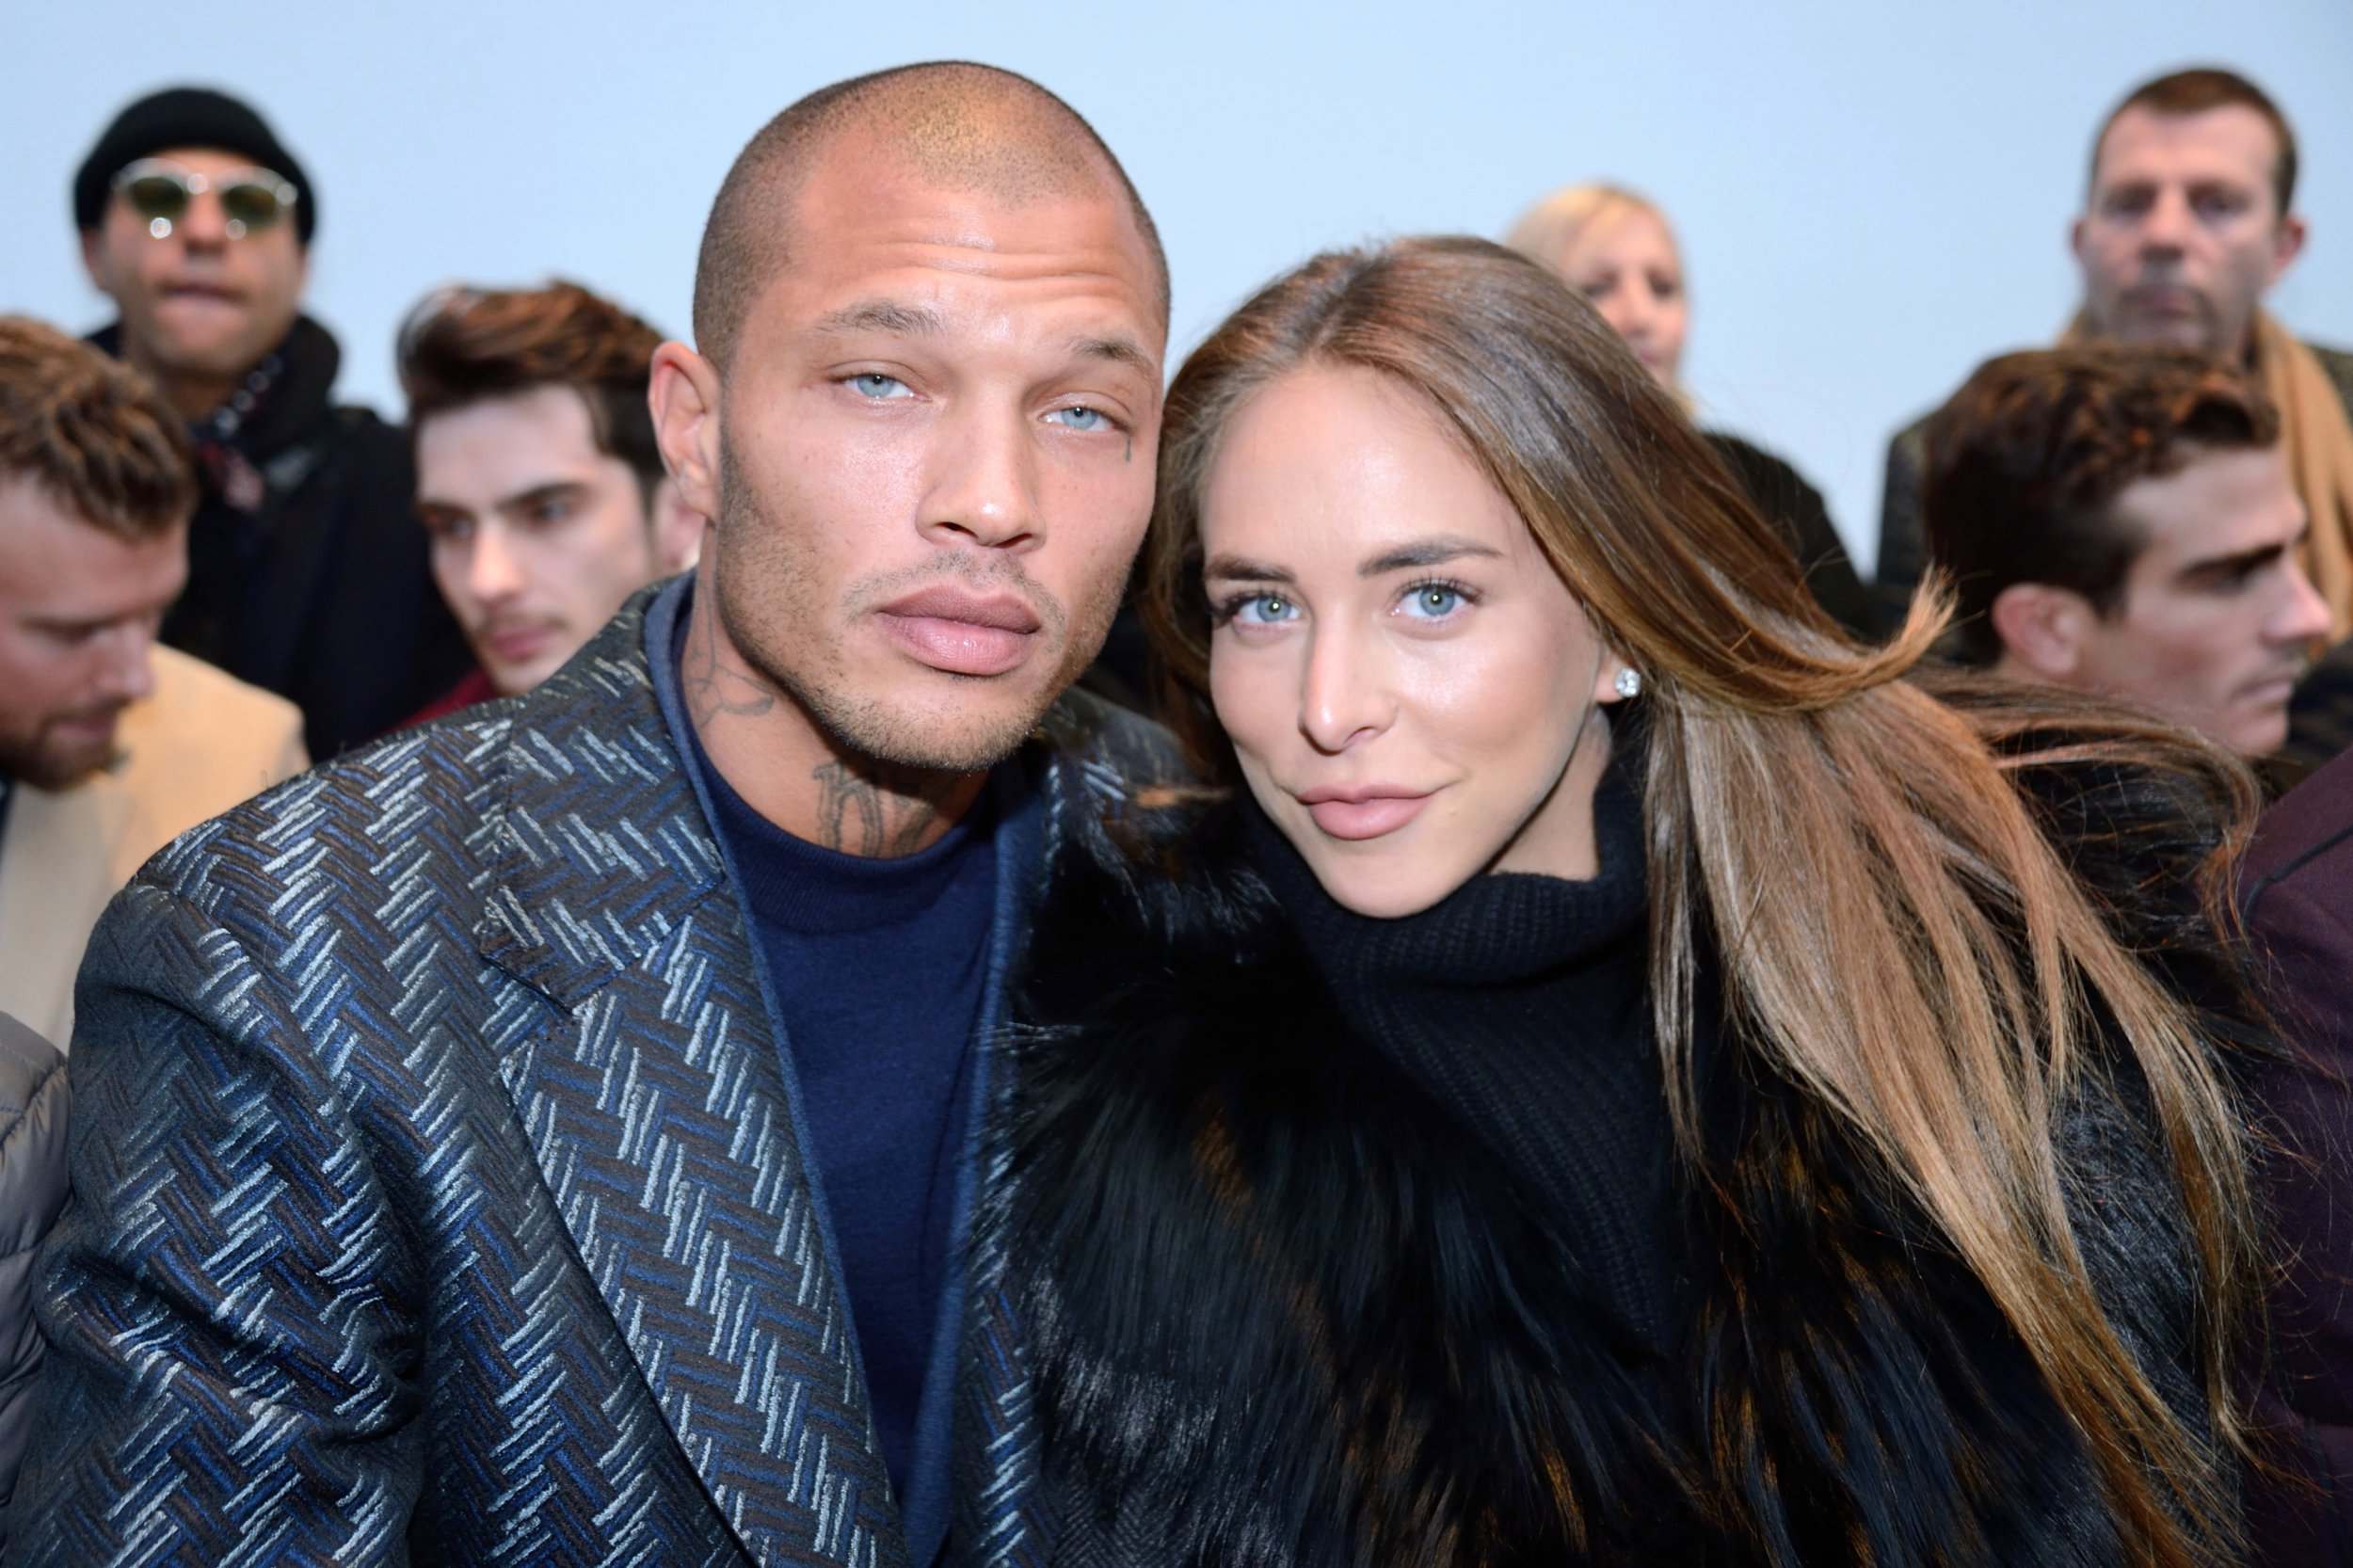 Jeremy Meeks and Chloe Green attending the Cerruti 1881 show as part of Paris Men's Fashion Week Fall/Winter 2018-2019 on January 19, 2018 in Paris, France. Photo by Aurore Marechal/ABACAPRESS.COM